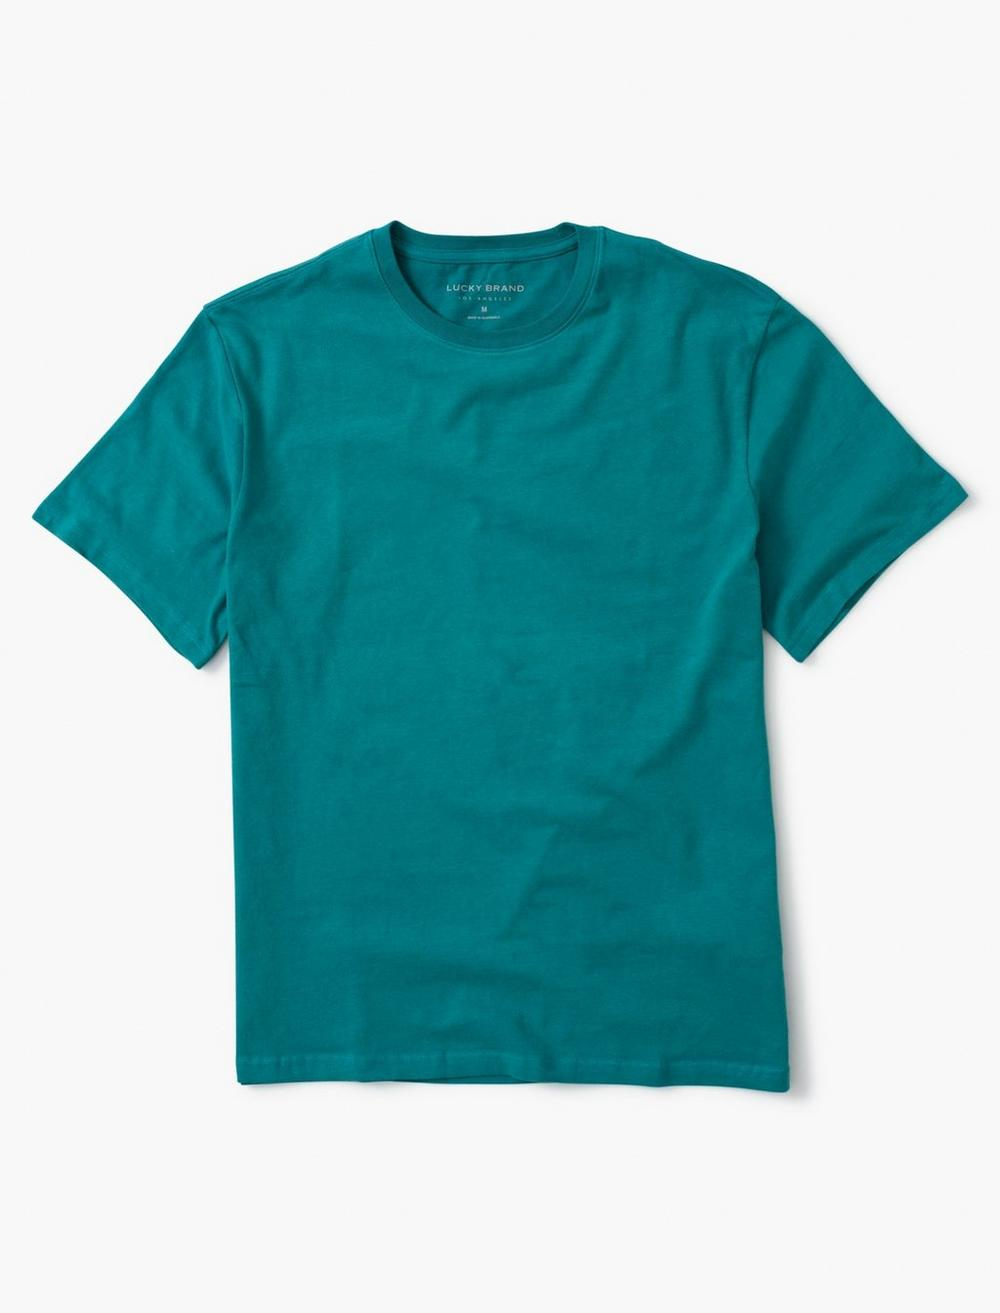 SUEDED JERSEY TEE, image 6